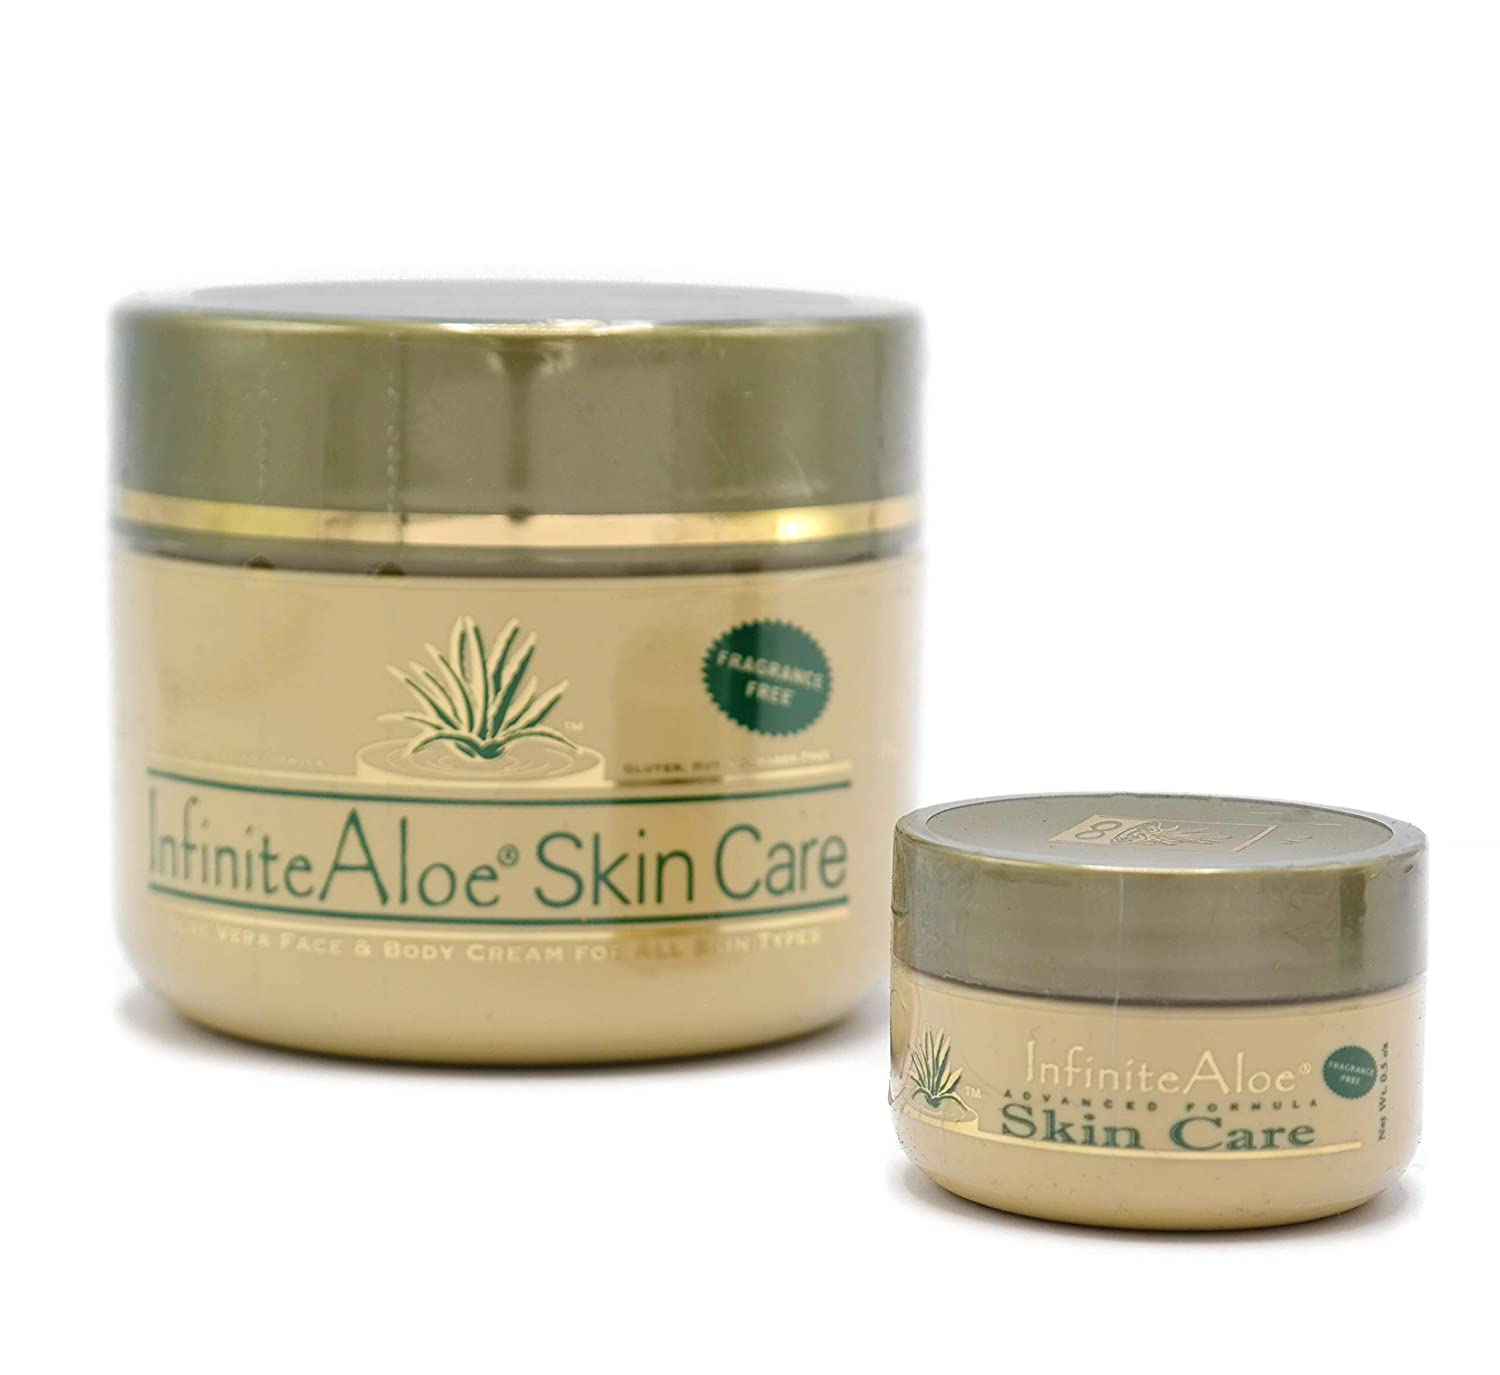 Infinite Aloe Skin Care Cream, Fragrance Free, 8oz. Jar (Plus a Bonus 0.5 oz InfiniteAloe Travel Jar)